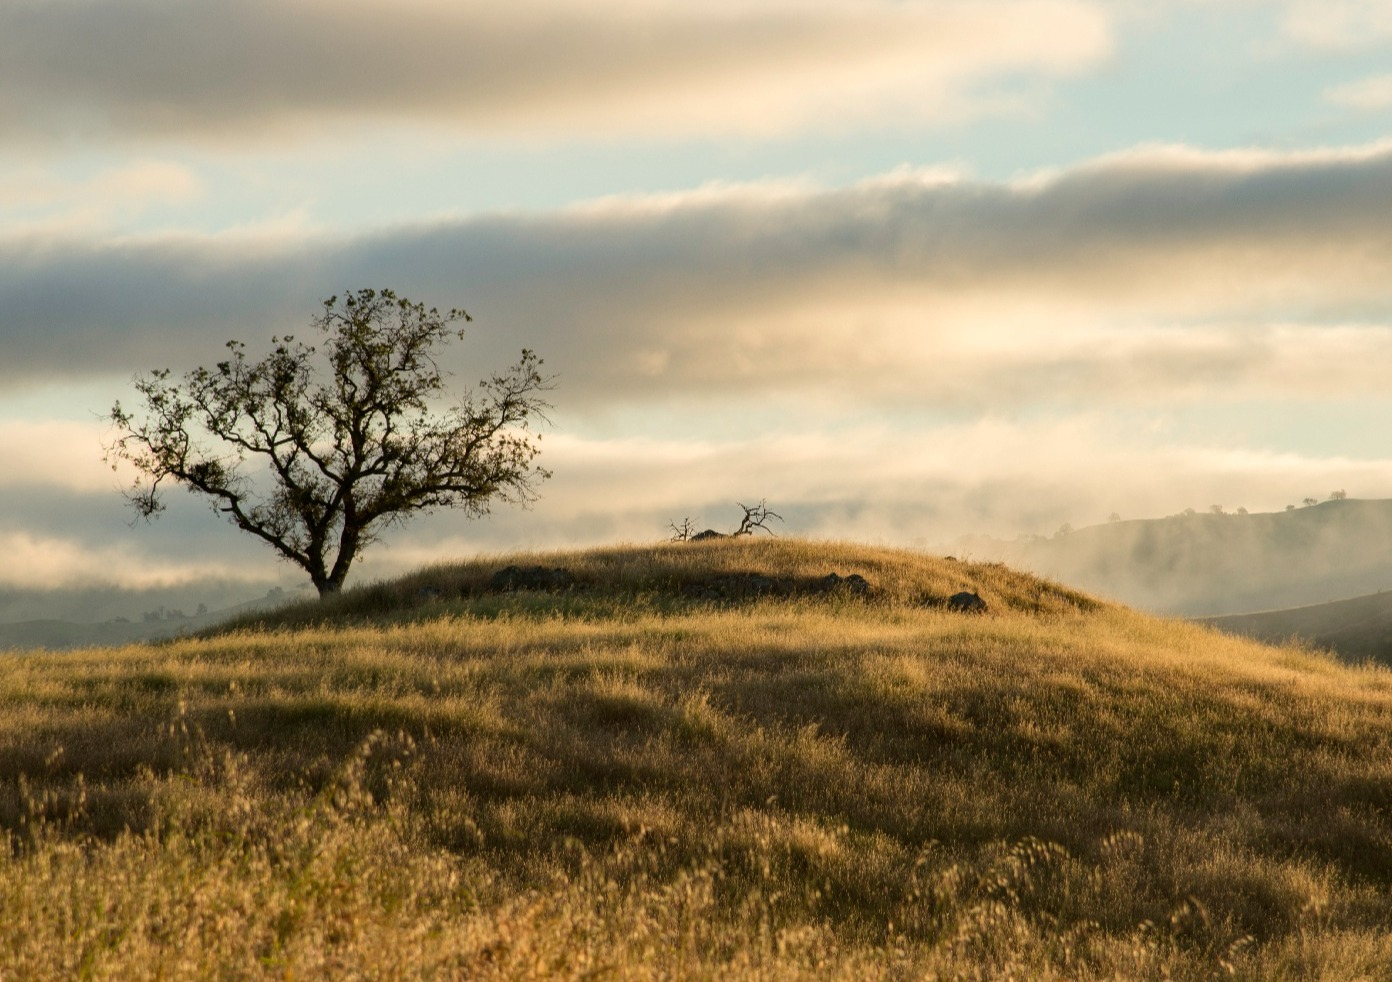 Lone oak tree on top of grassy covered hill under cloudy sky